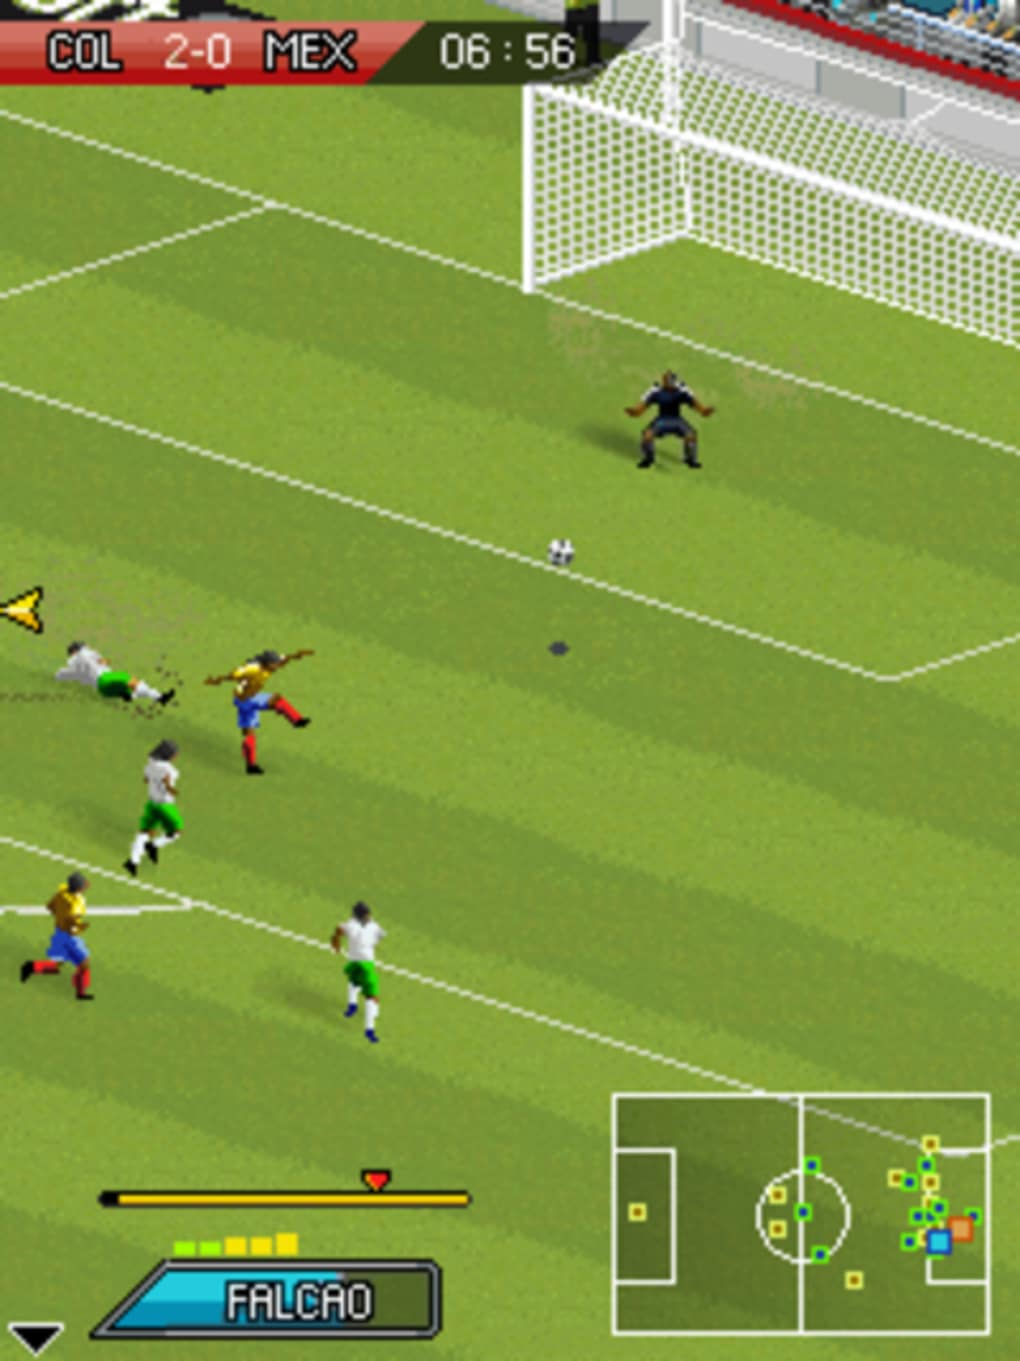 Download real football 2013 240x320 java game dedomil. Net.